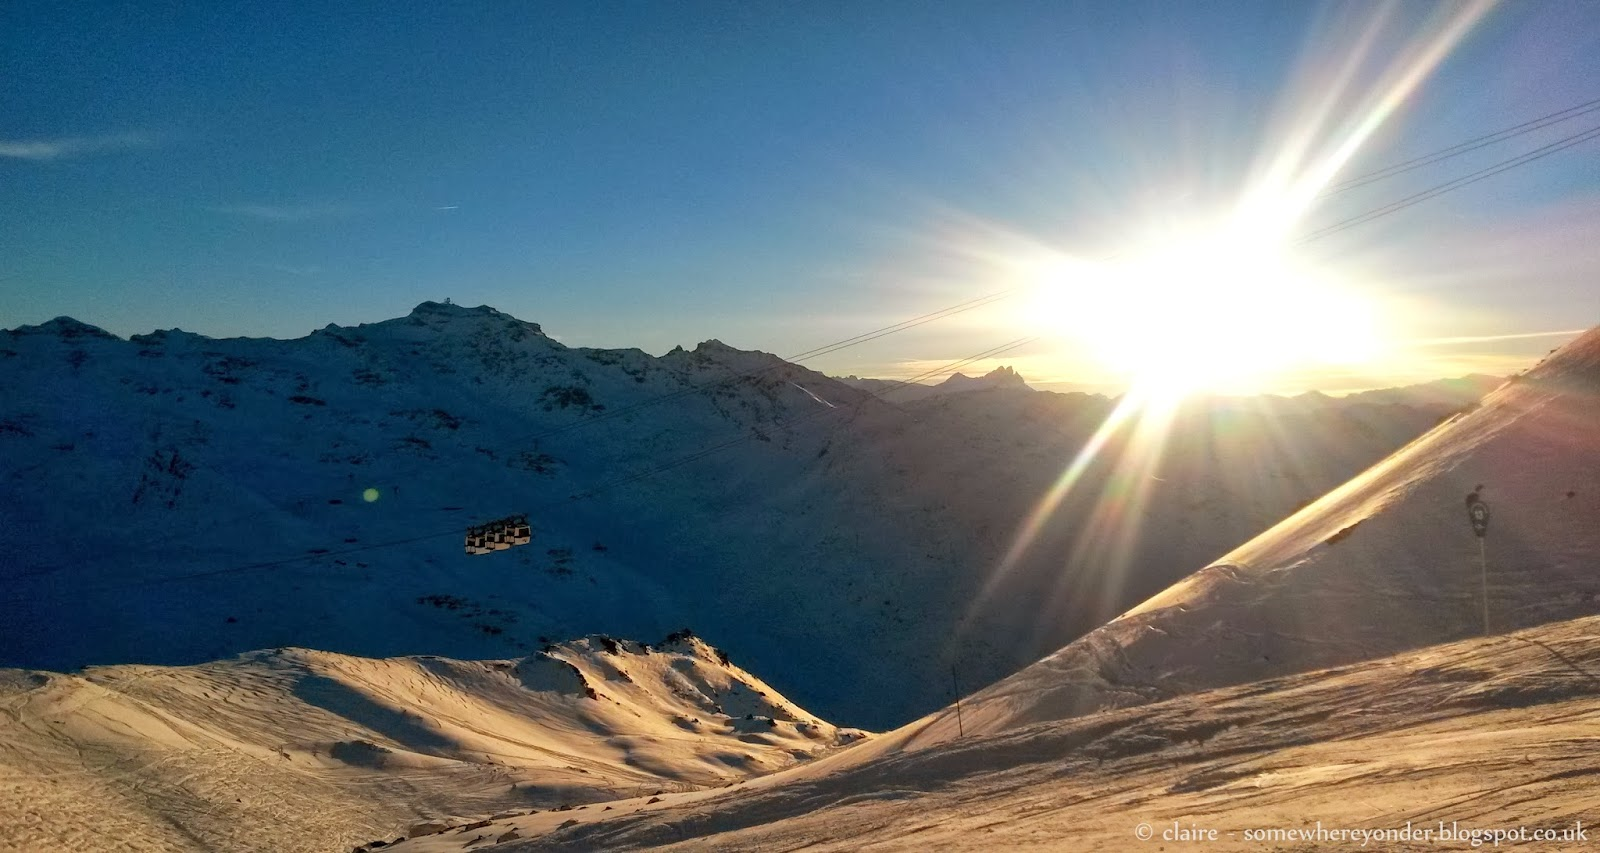 Sun set on the mountain - Val Thorens, France